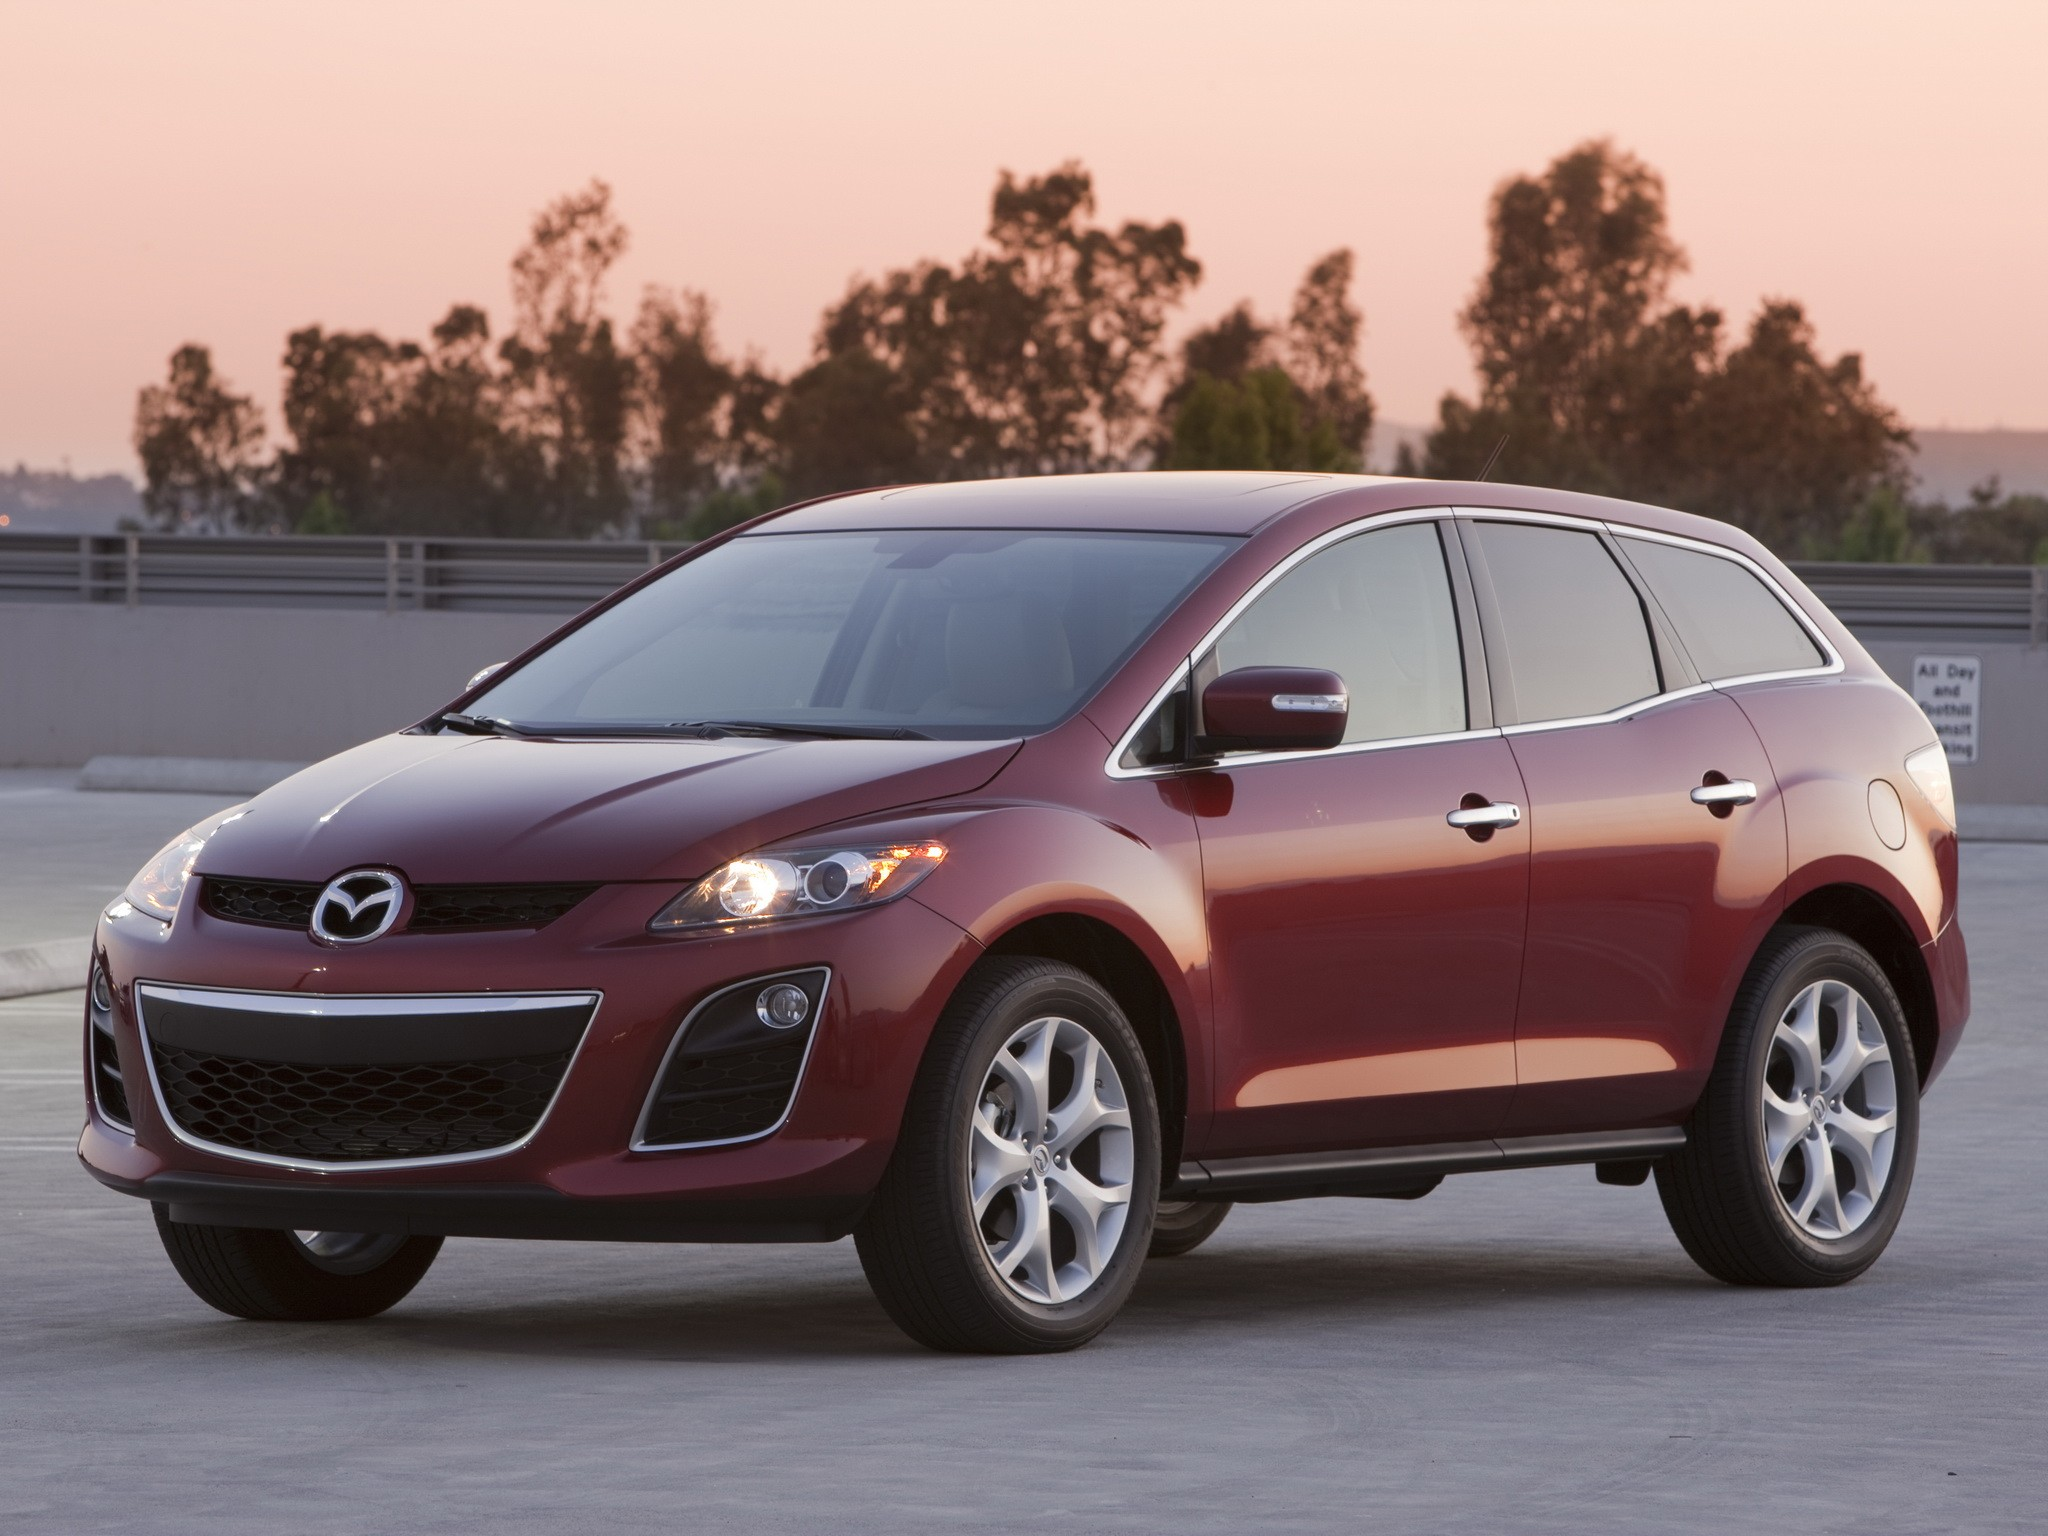 MAZDA CX-7 - 2009, 2010, 2011, 2012 - autoevolution